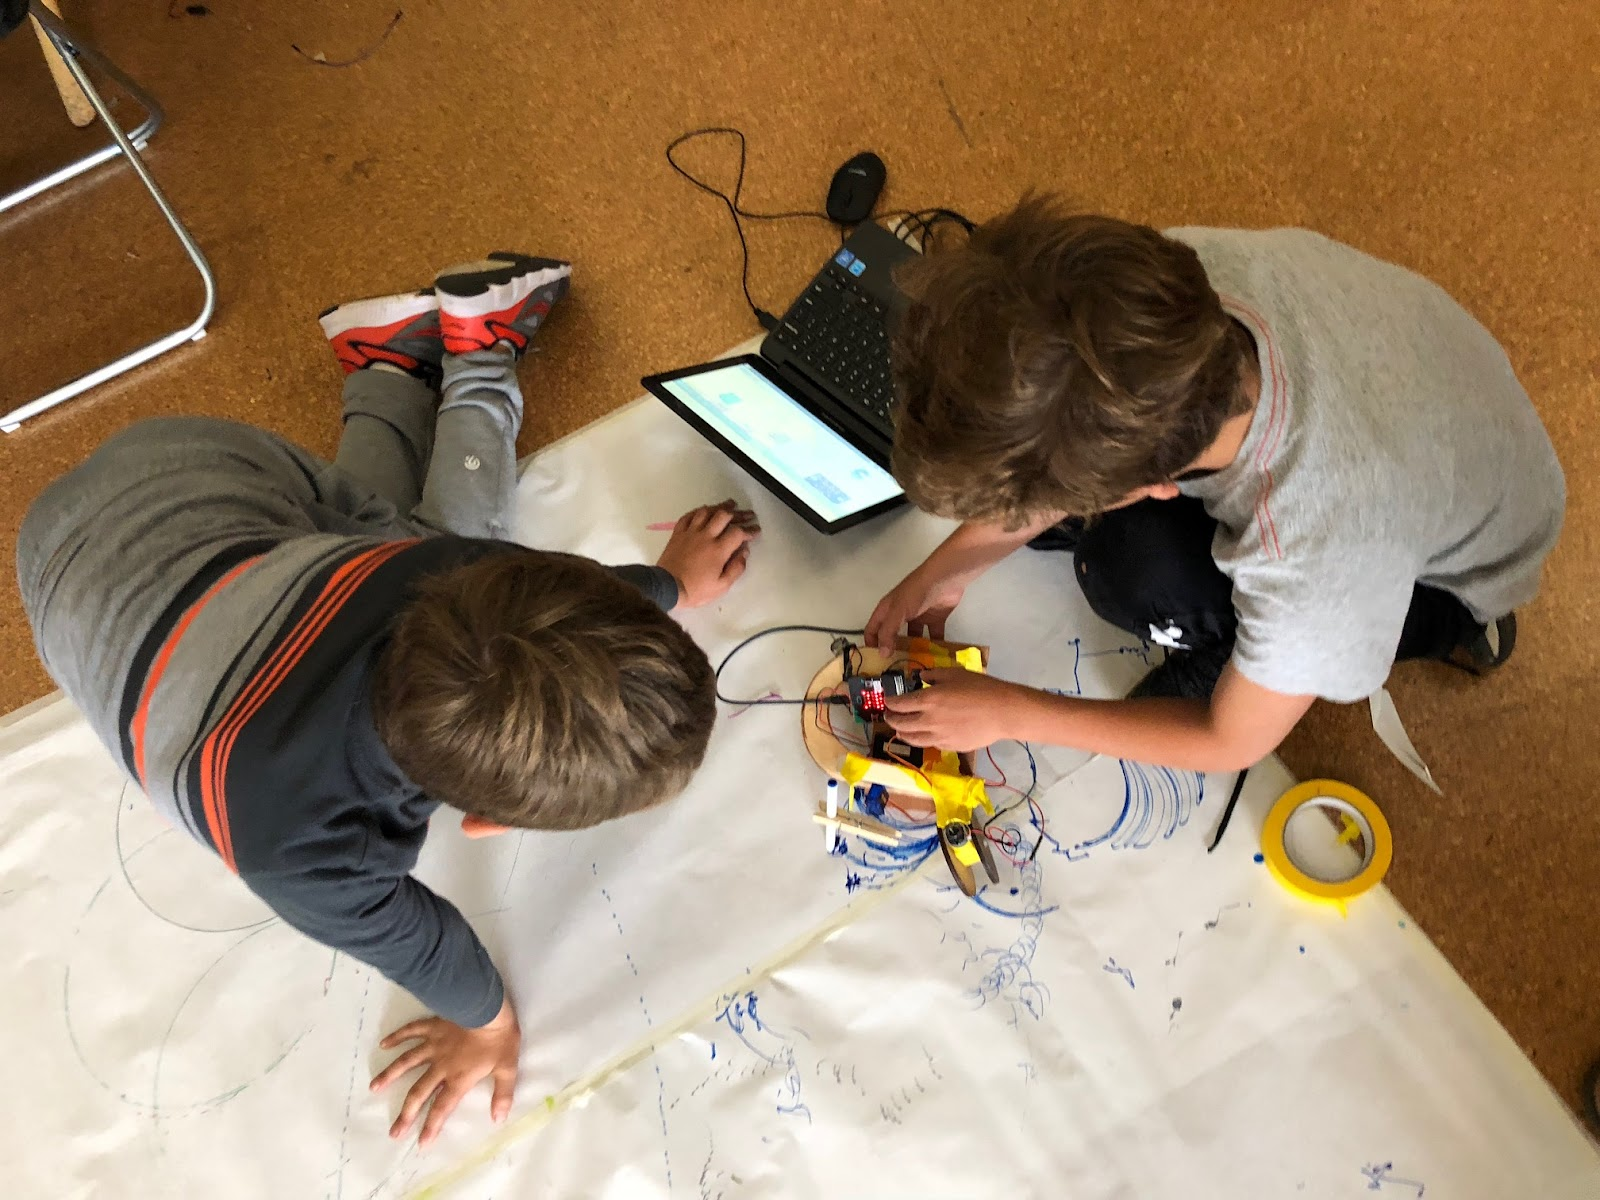 students test their micro:bit and moto:bit drawing bots